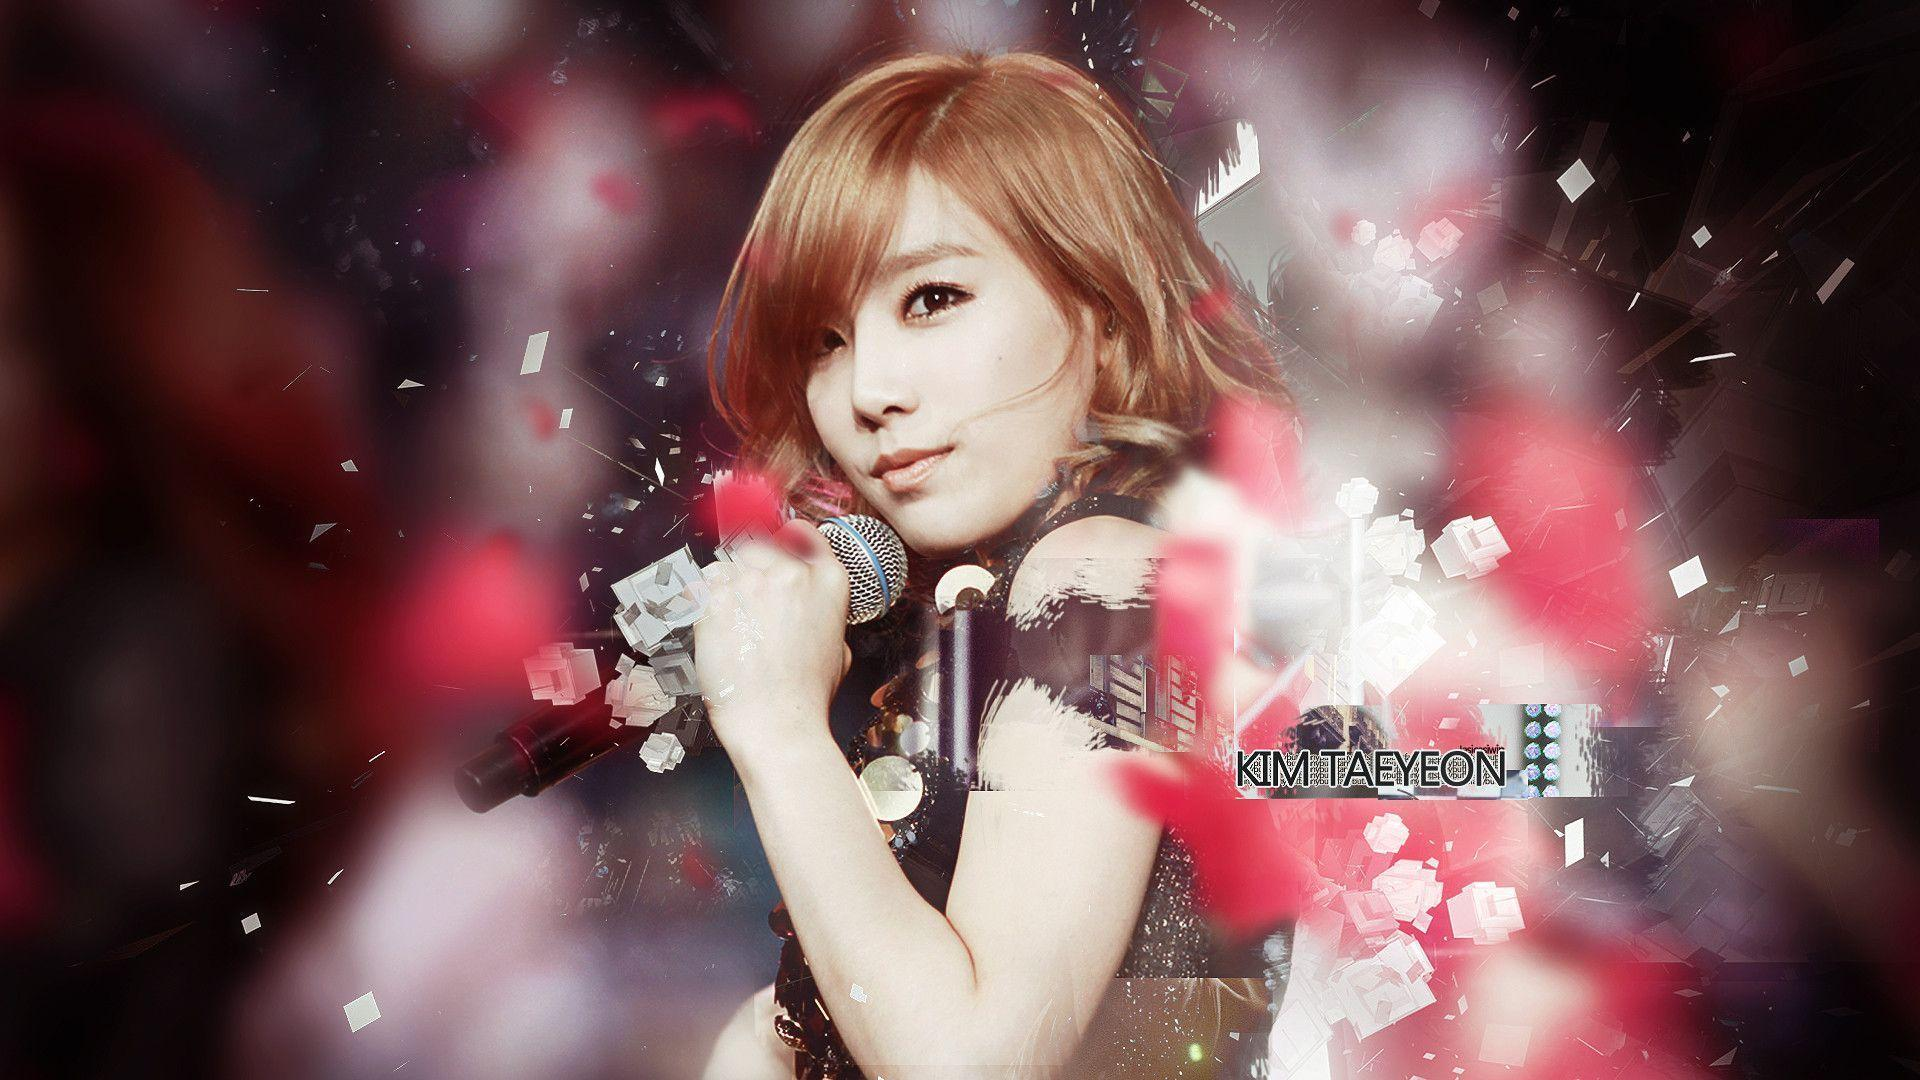 Kim Taeyeon Wallpapers 2015 - Wallpaper Cave Taeyeon The Boys